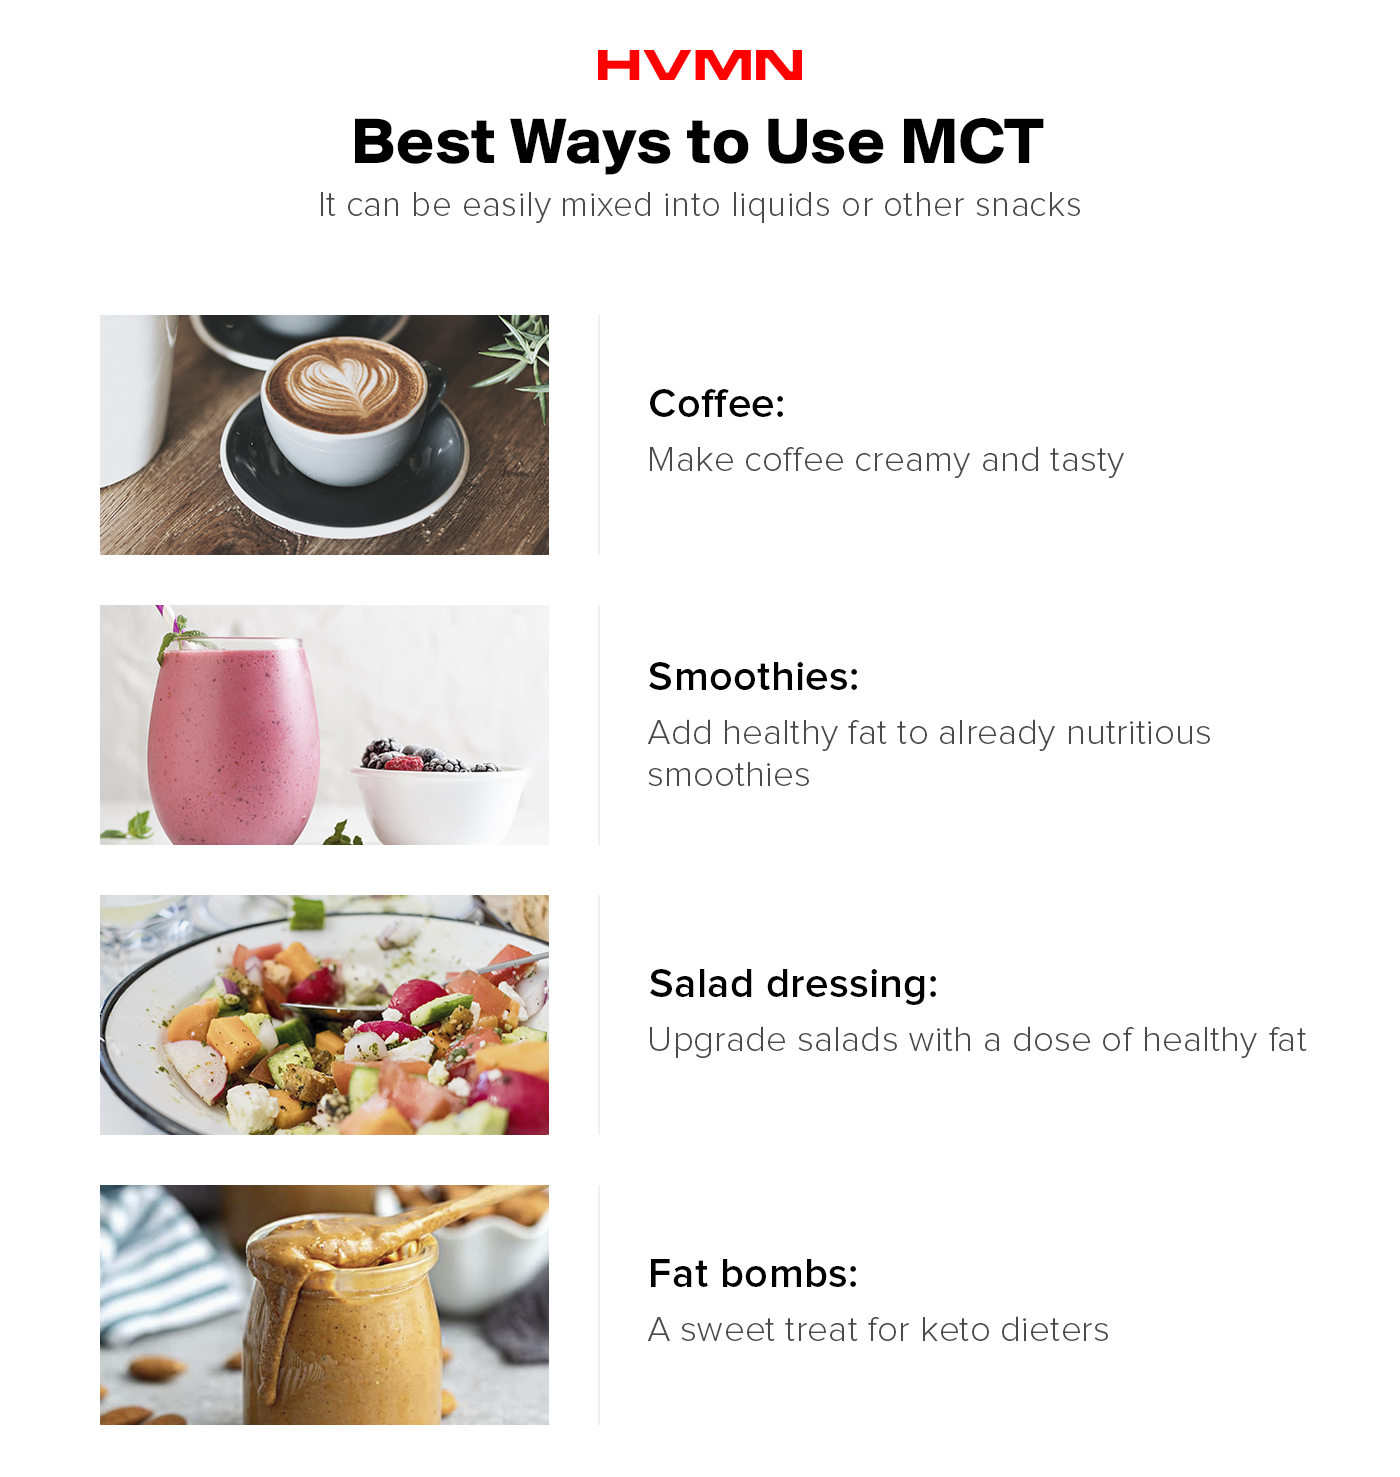 MCTs can be used in a number of different ways including: coffee, smoothies, salad dressings, and fat bombs.